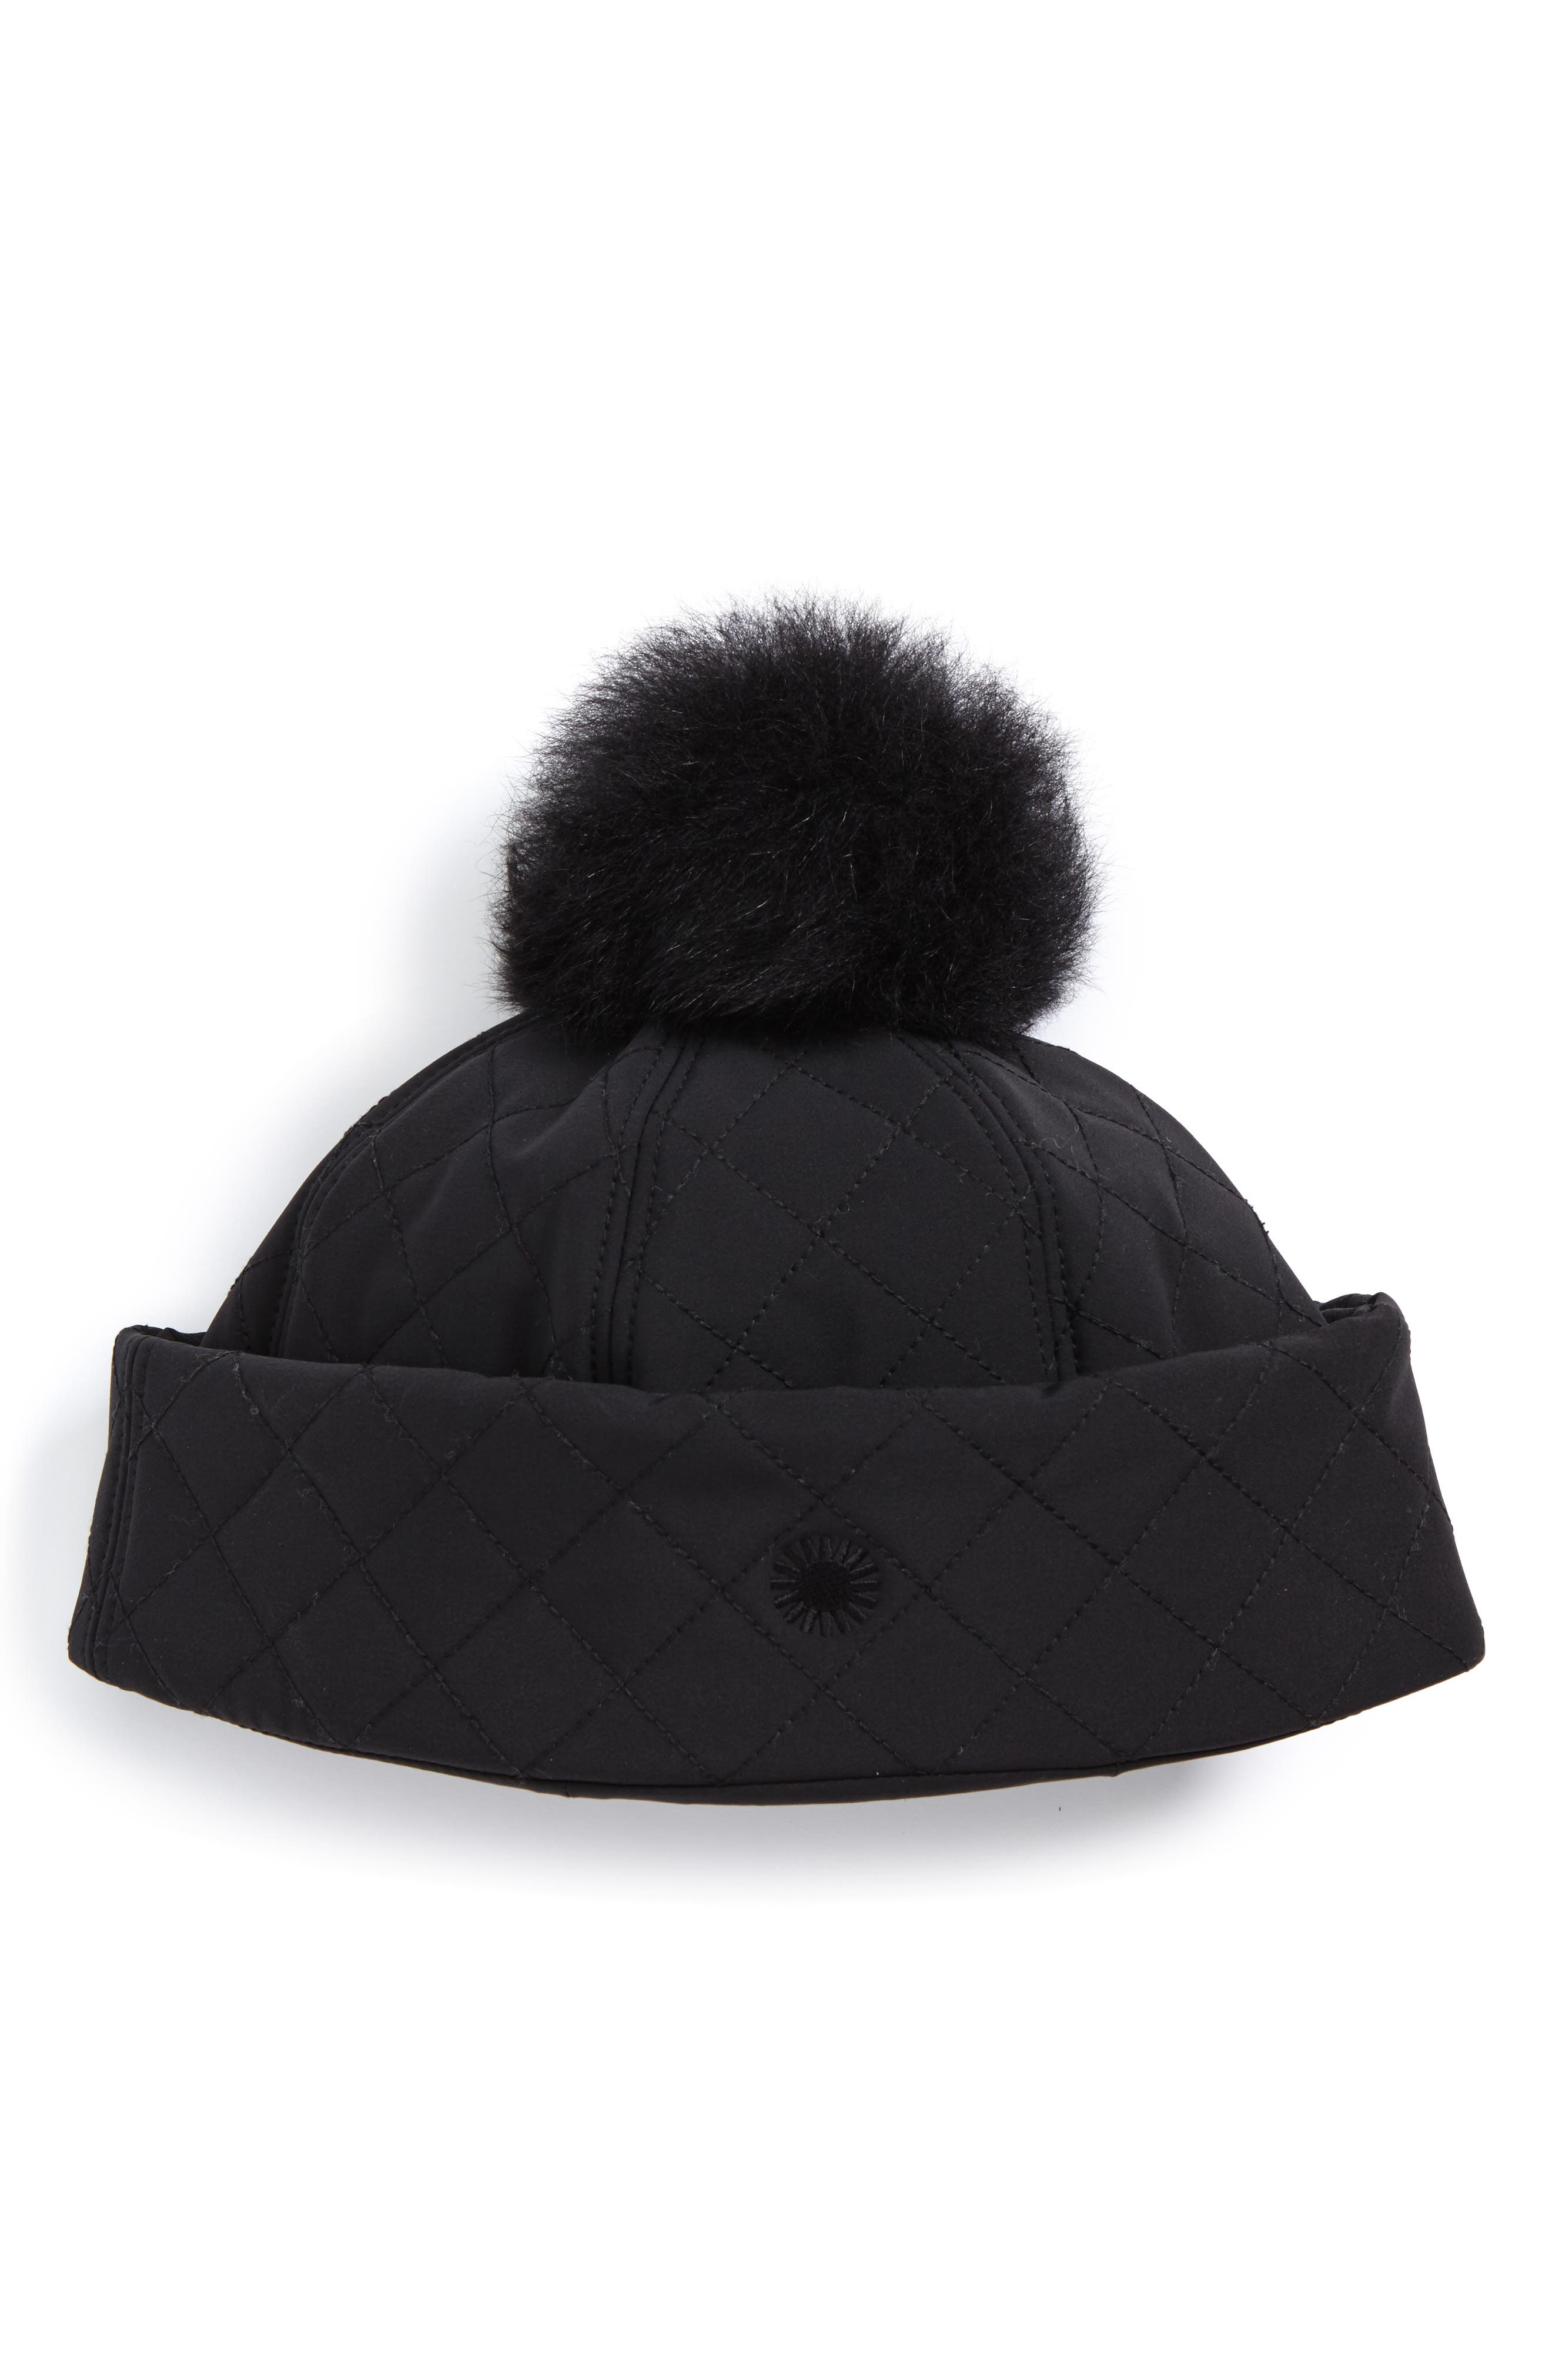 Australia Water Resistant Quilted Hat with Genuine Shearling Pompom,                             Main thumbnail 1, color,                             BLACK